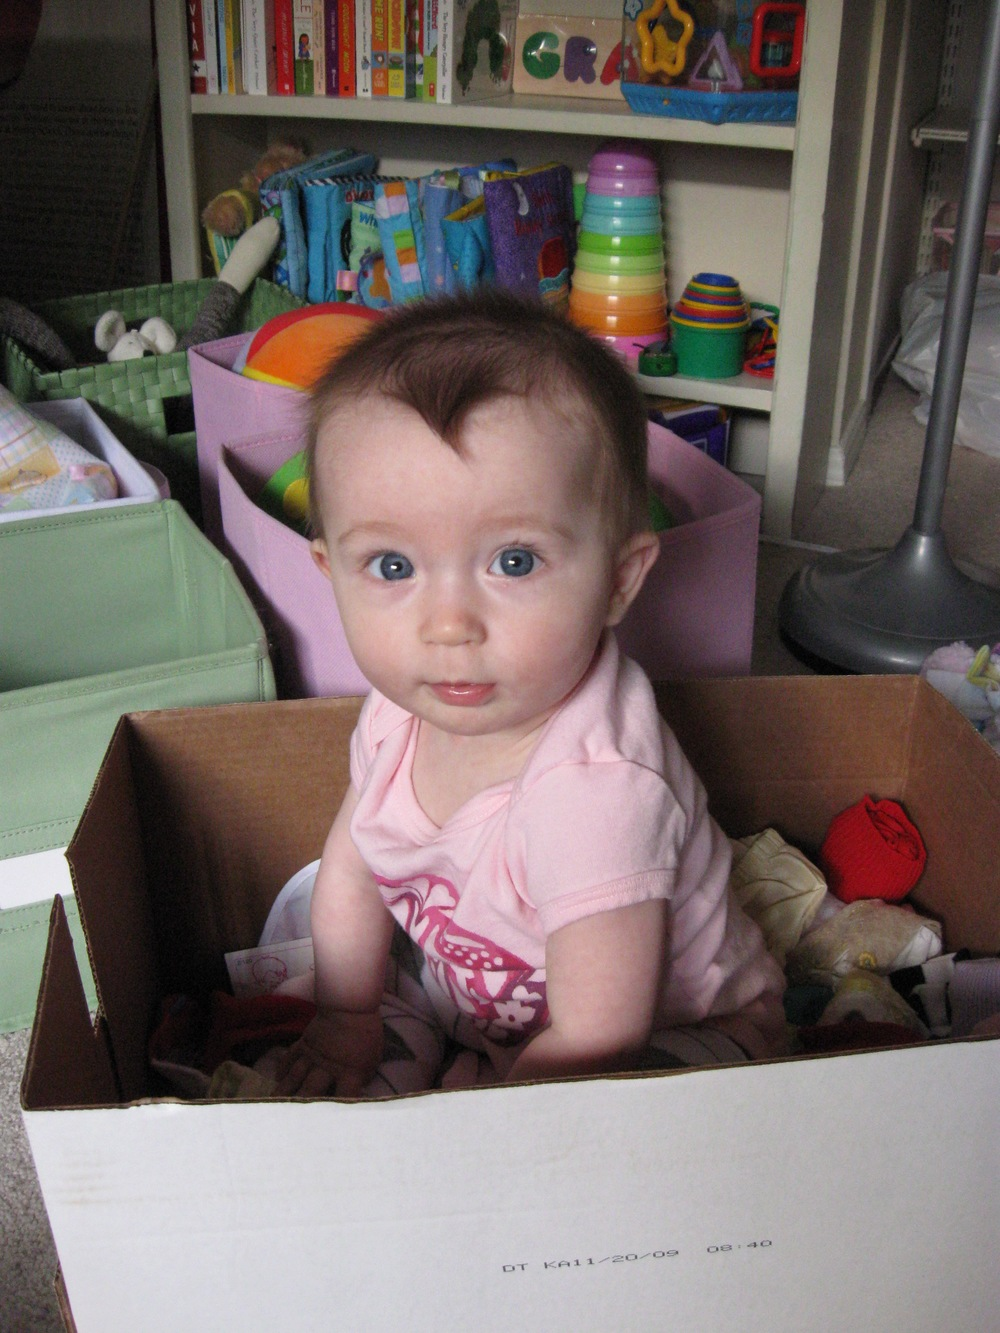 2010 — 7-month-old Grace helping us unpack, in the bedroom we are currently packing up again